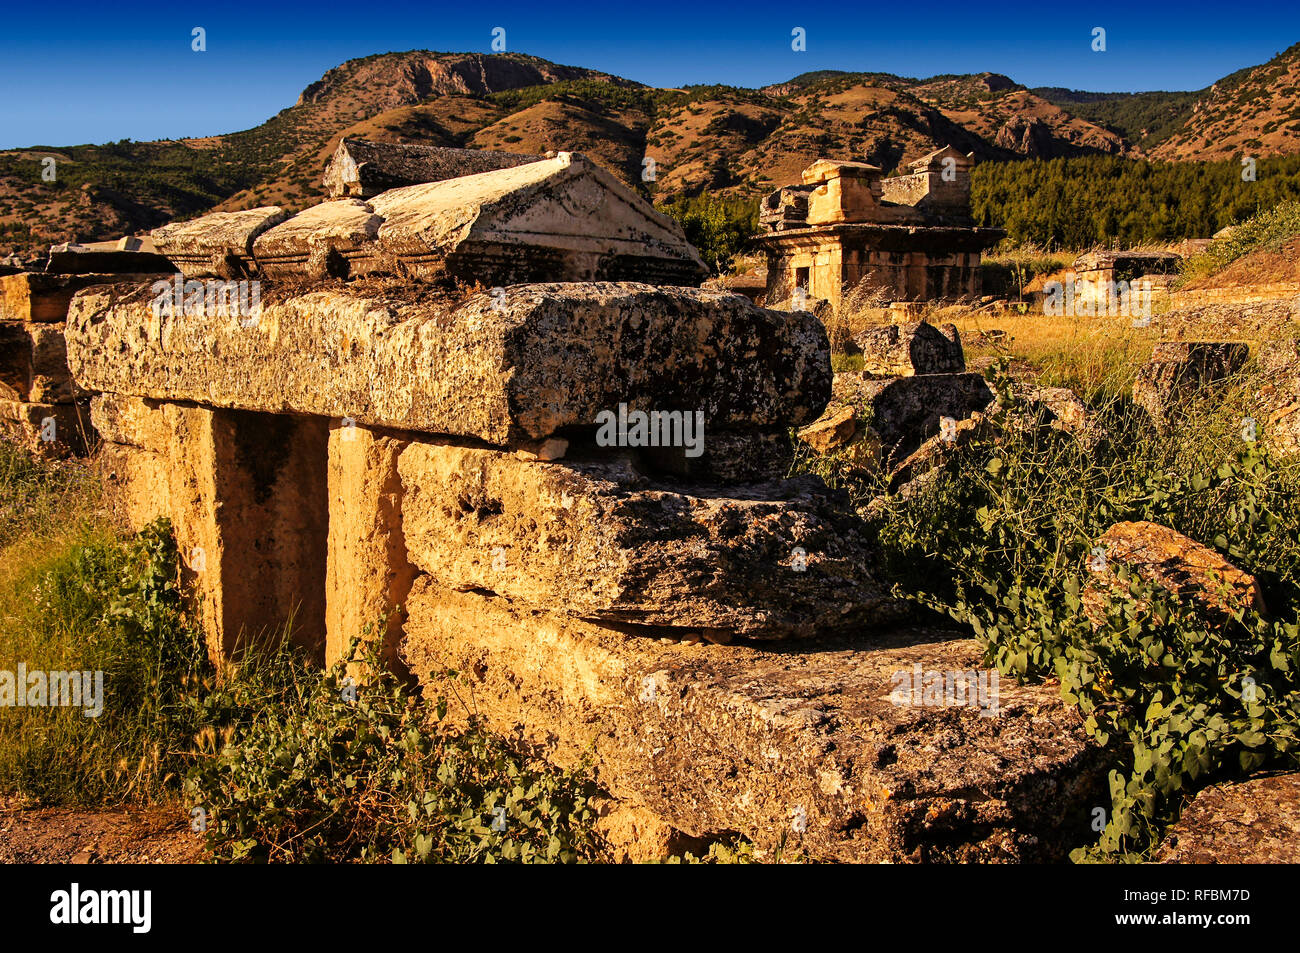 UNESCO World Heritage Site. Ruins of the ancient city Hierapolis. Pamukkale, Denizli Province, Turkey - Stock Image